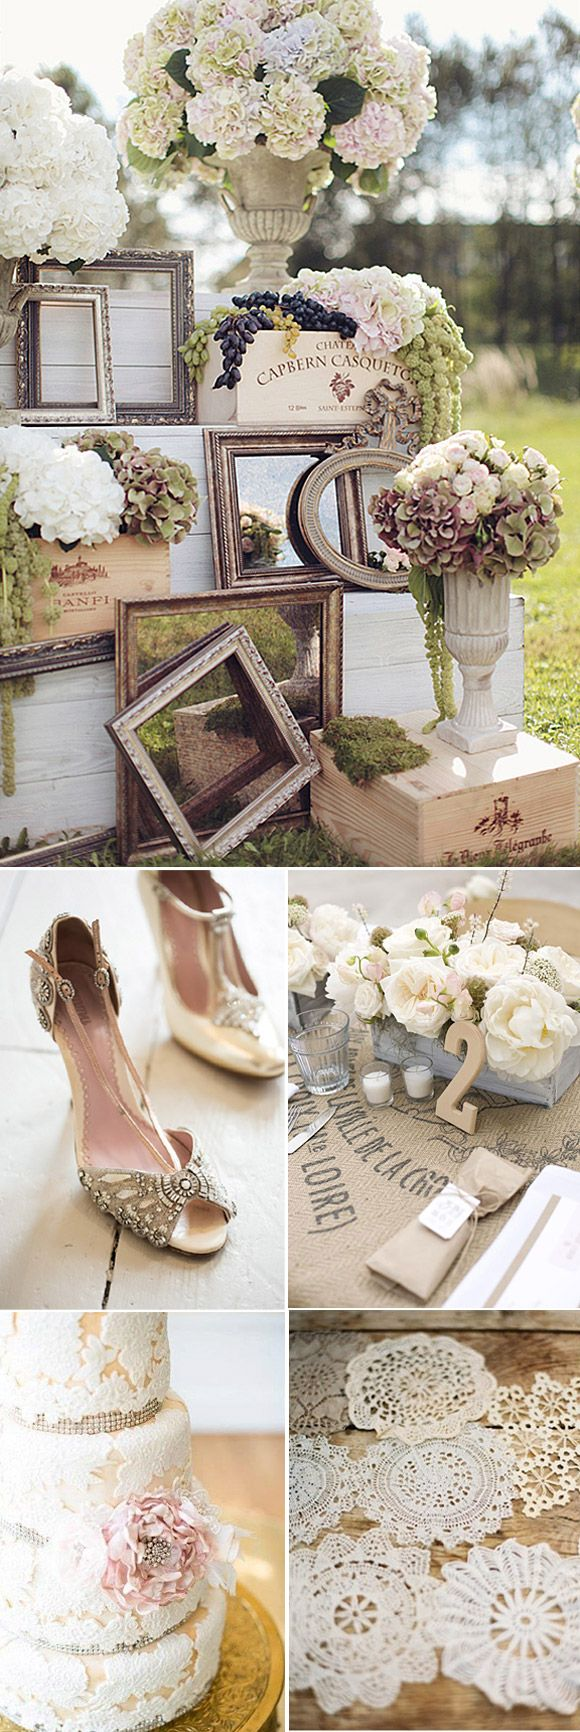 Estilo Vintage Decoracion Boda ~ Explore Bodas Vintage Mesas, Vintage Wedding, and more!